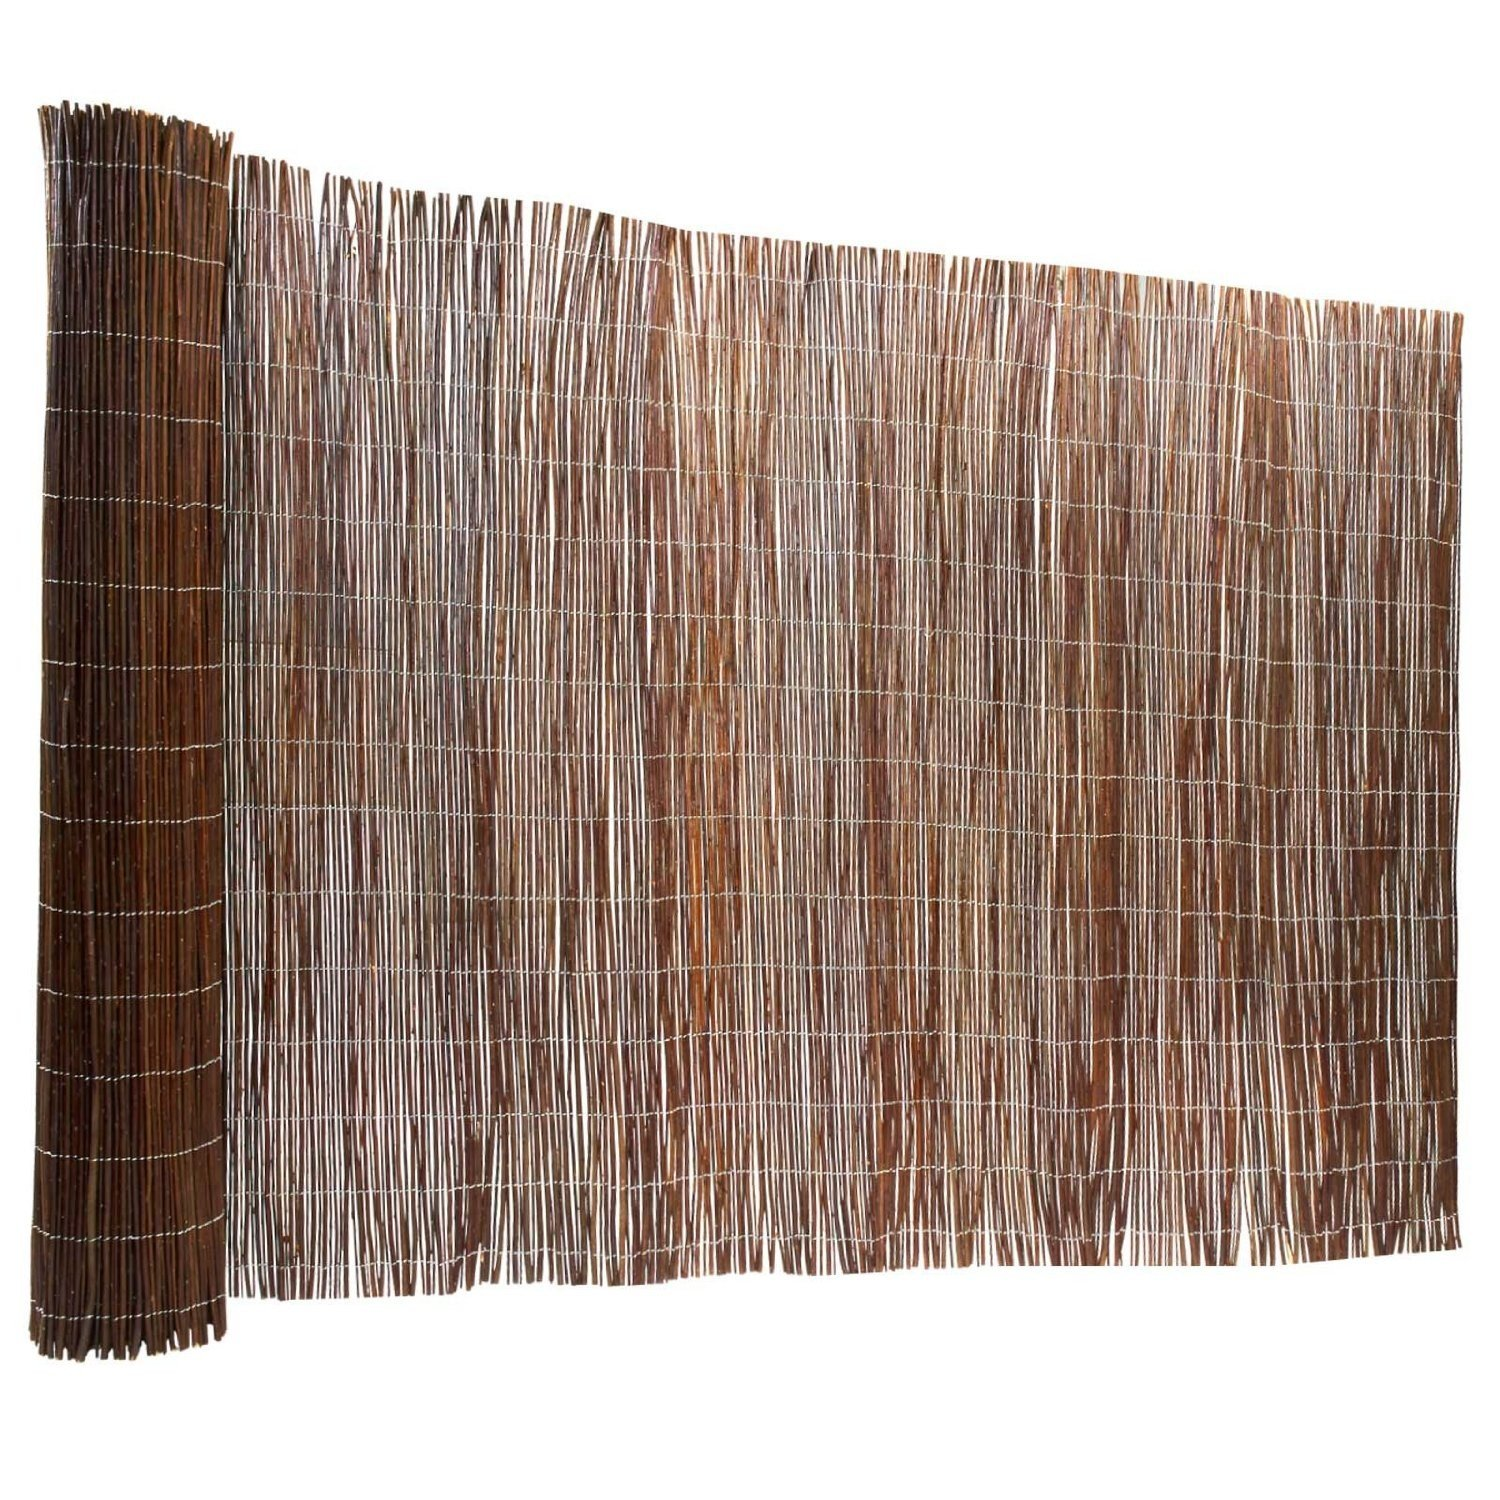 Forever Bamboo Willow Fencing, 6ft H x 16ft L